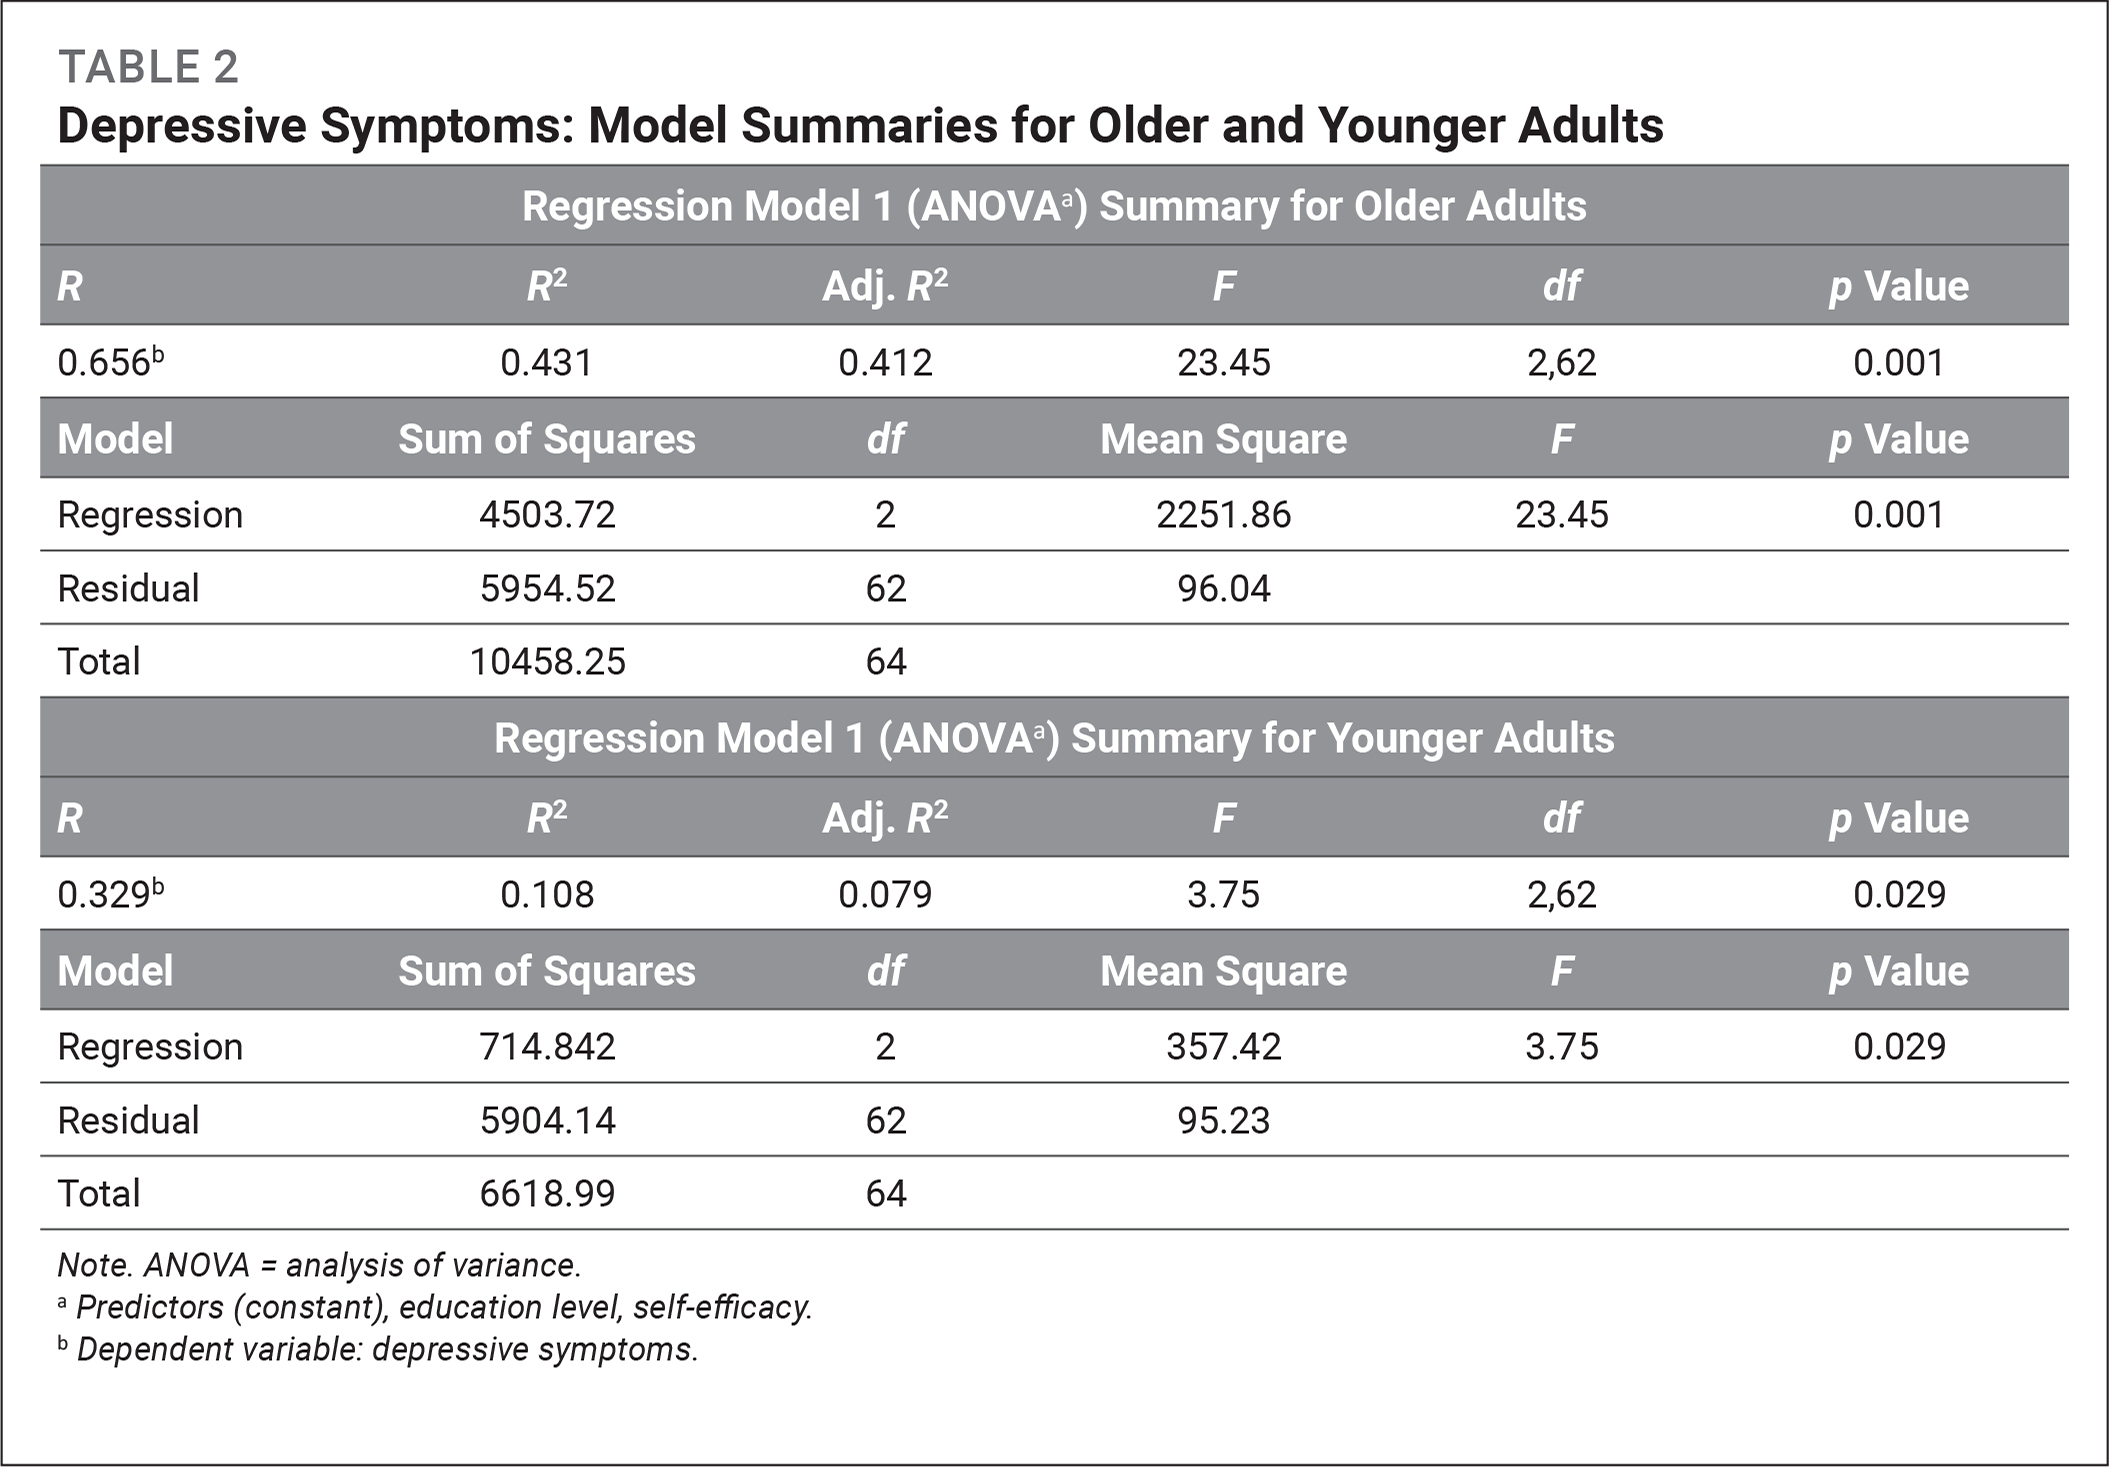 Depressive Symptoms: Model Summaries for Older and Younger Adults